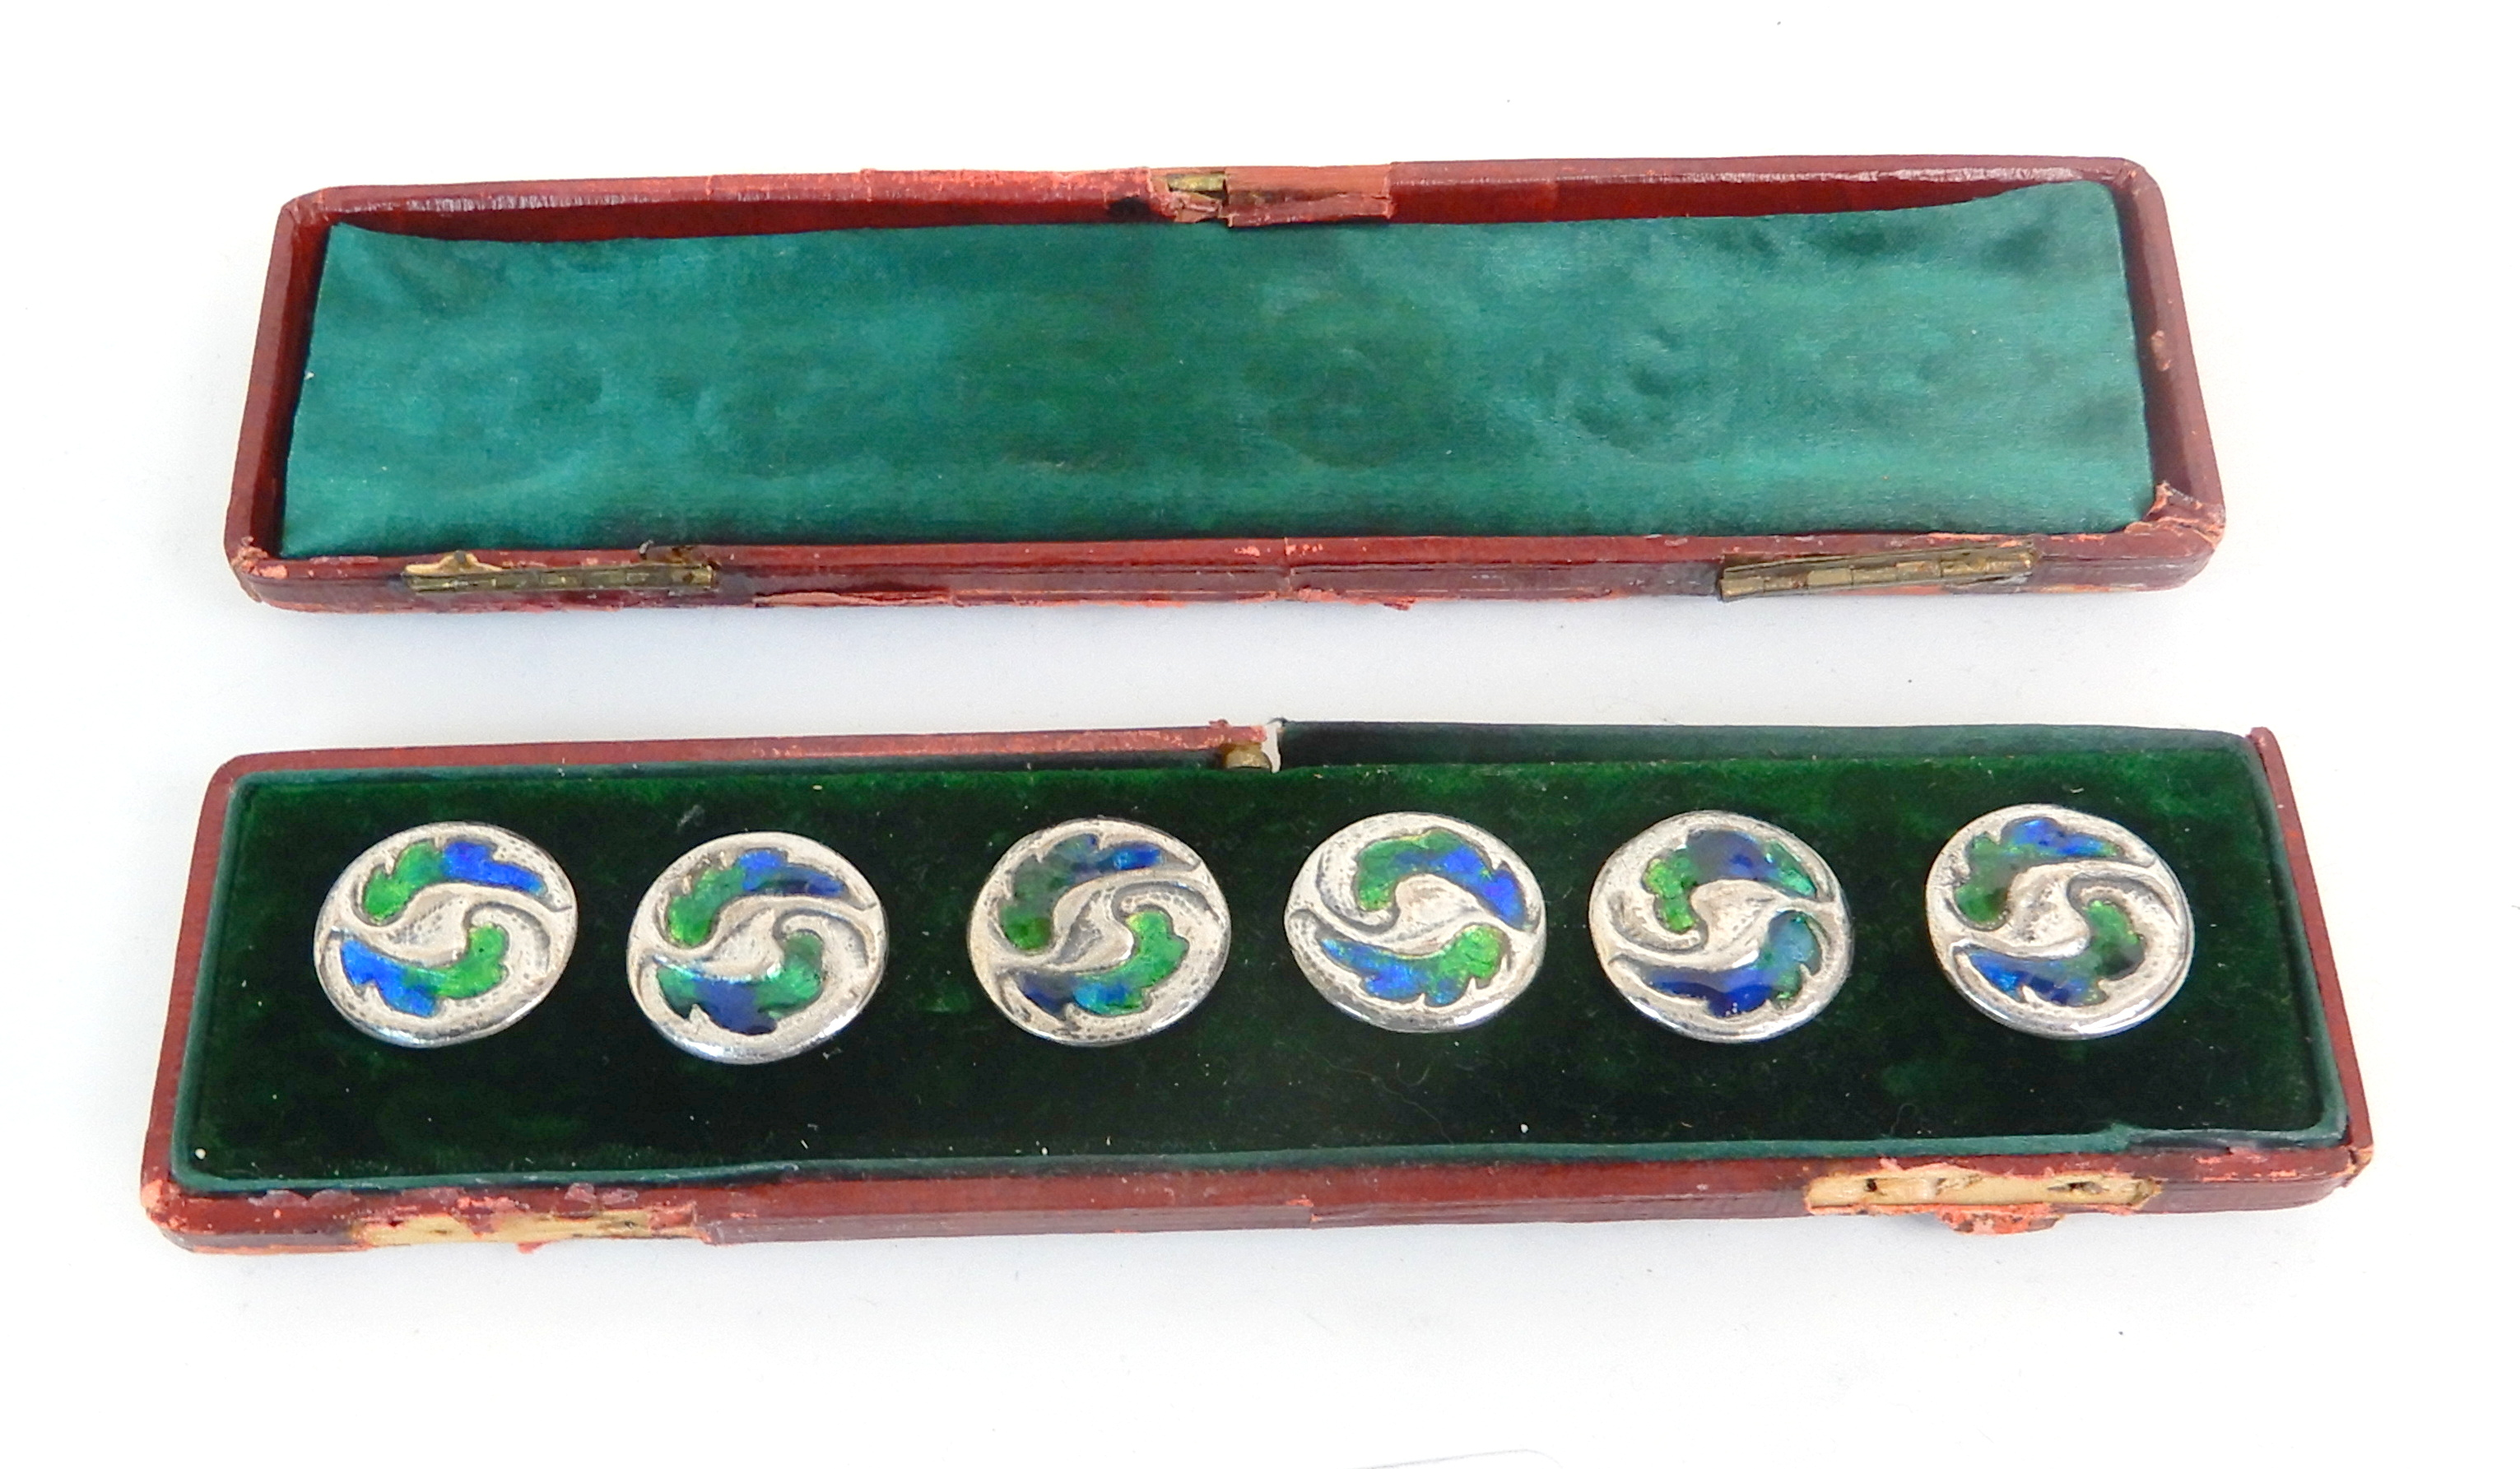 Lot 133 - A CASED SET OF SIX ARTS AND CRAFTS SILVER AND ENAMEL BUTTONS by William Hair Haseler, Birmingham